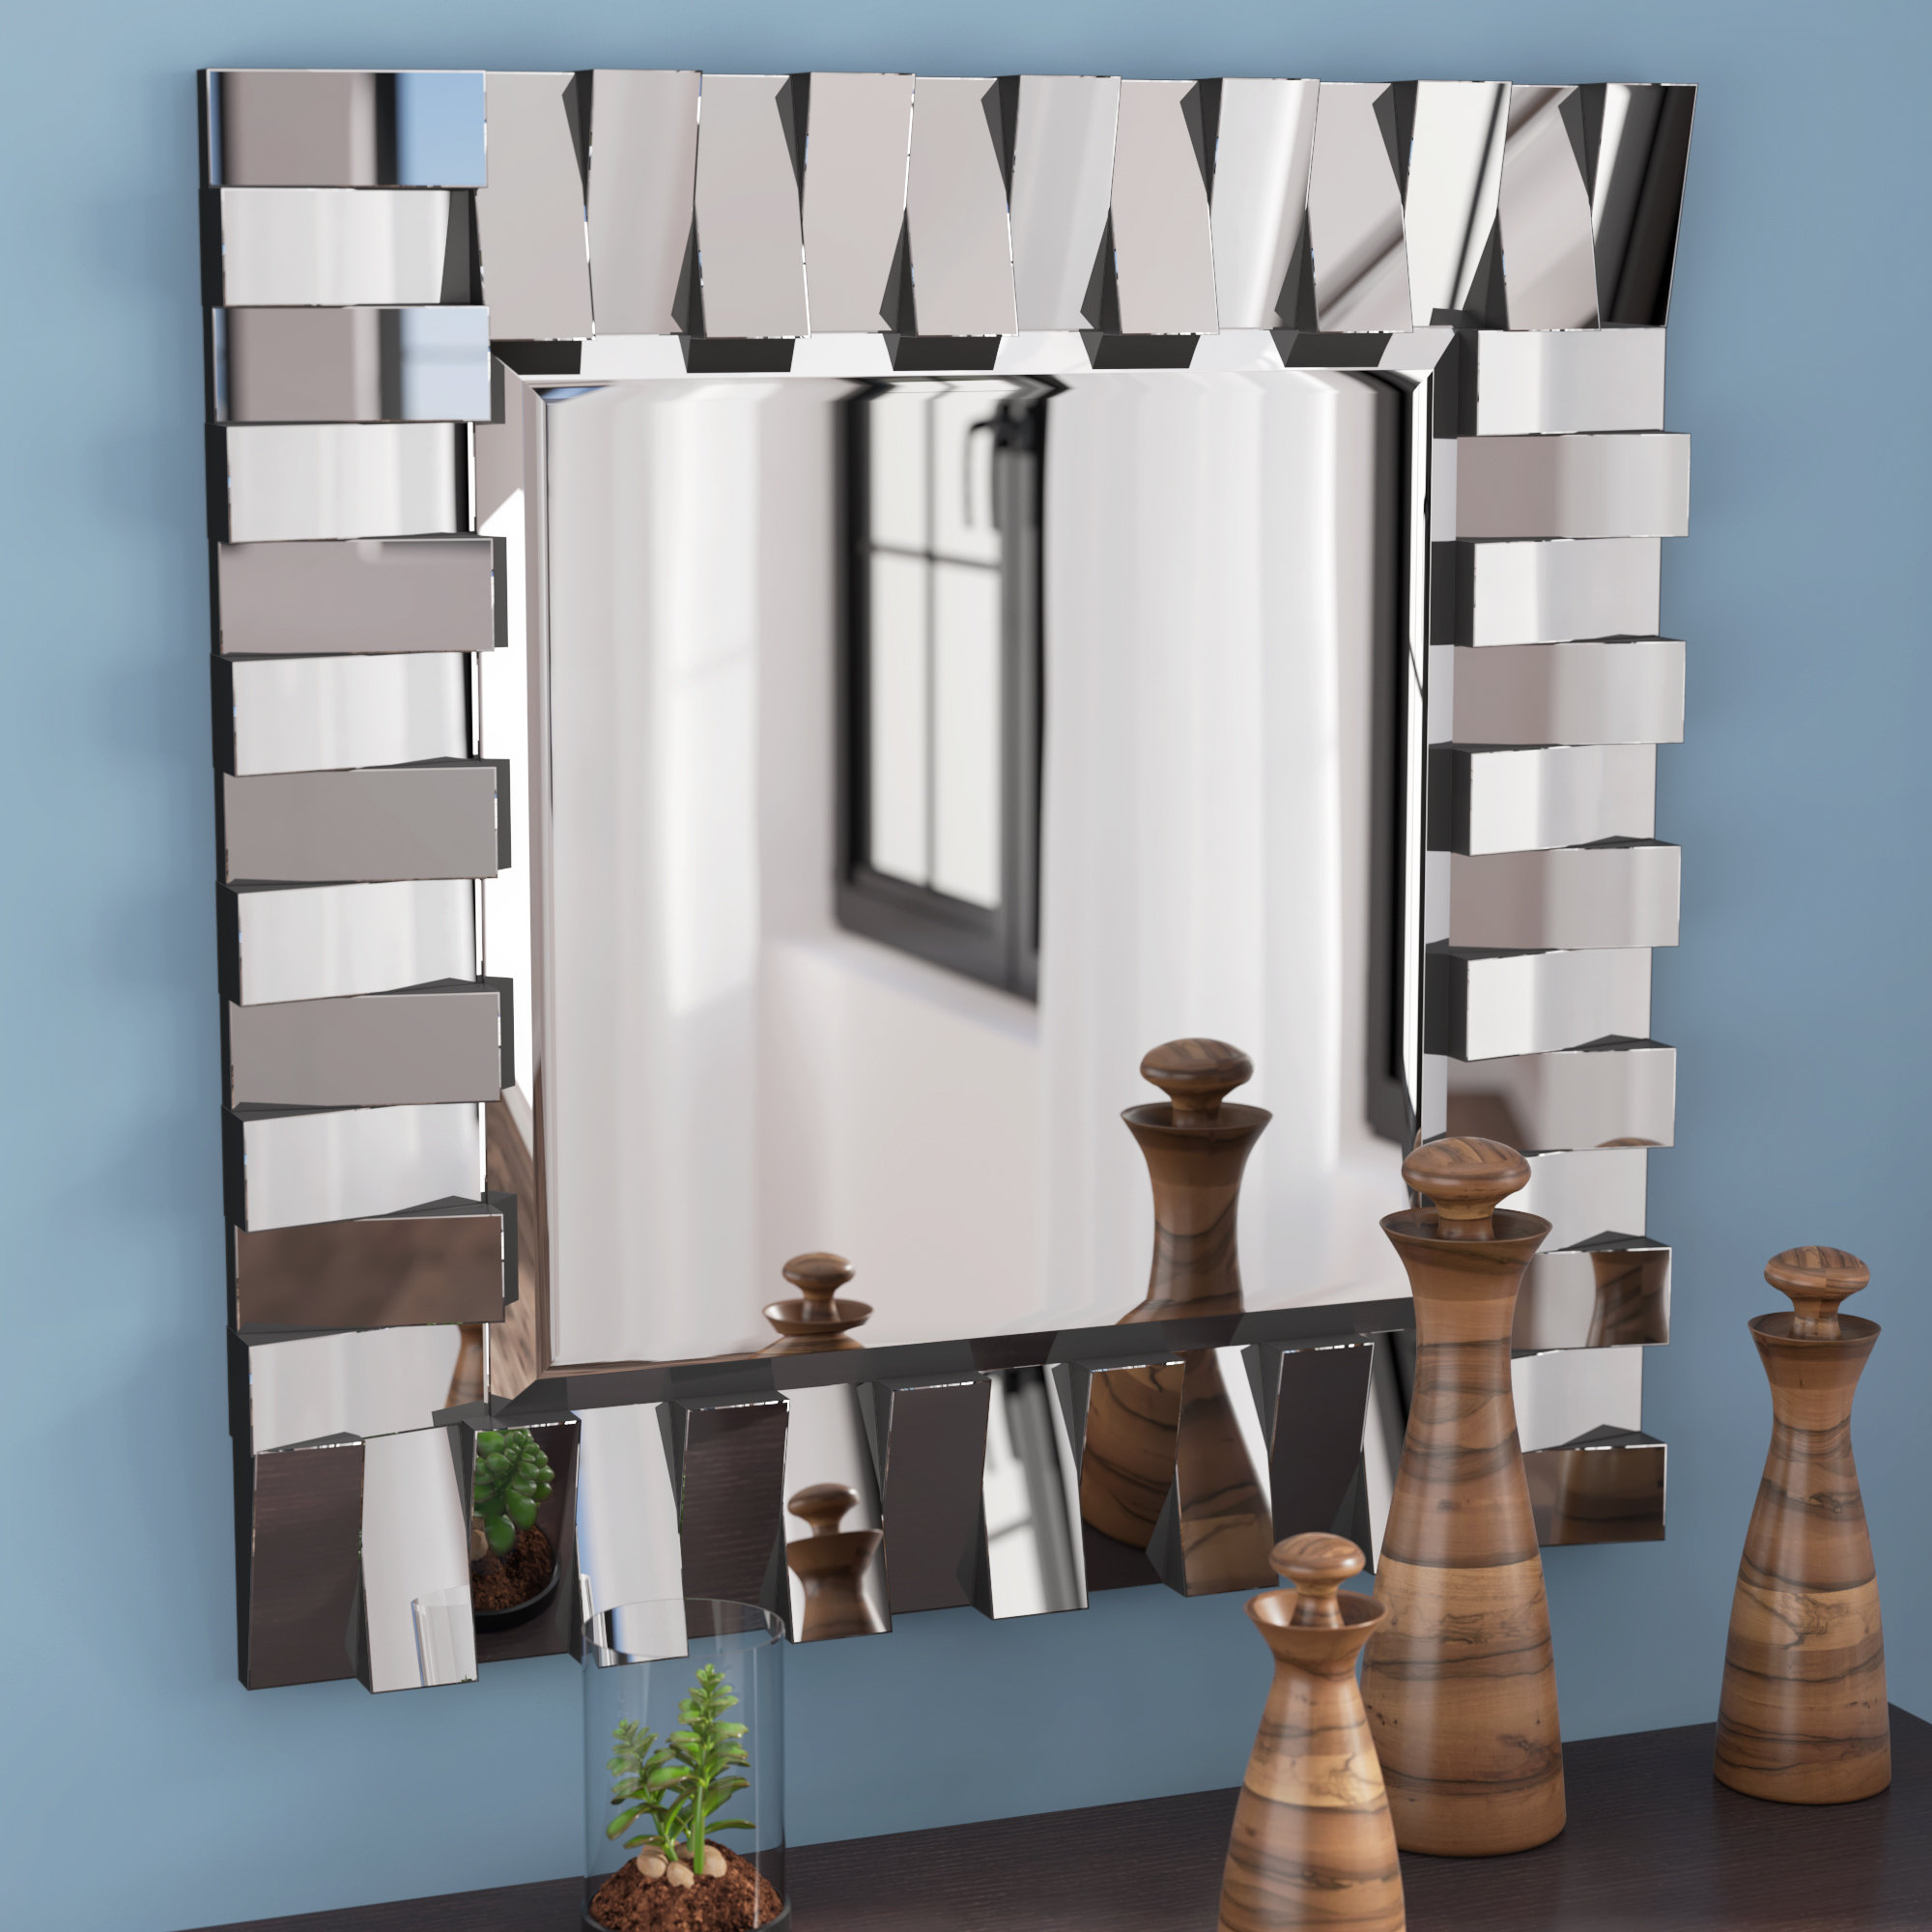 Modern & Contemporary Beveled Wall Mirror For Best And Newest Pennsburg Rectangle Wall Mirrors (View 6 of 20)